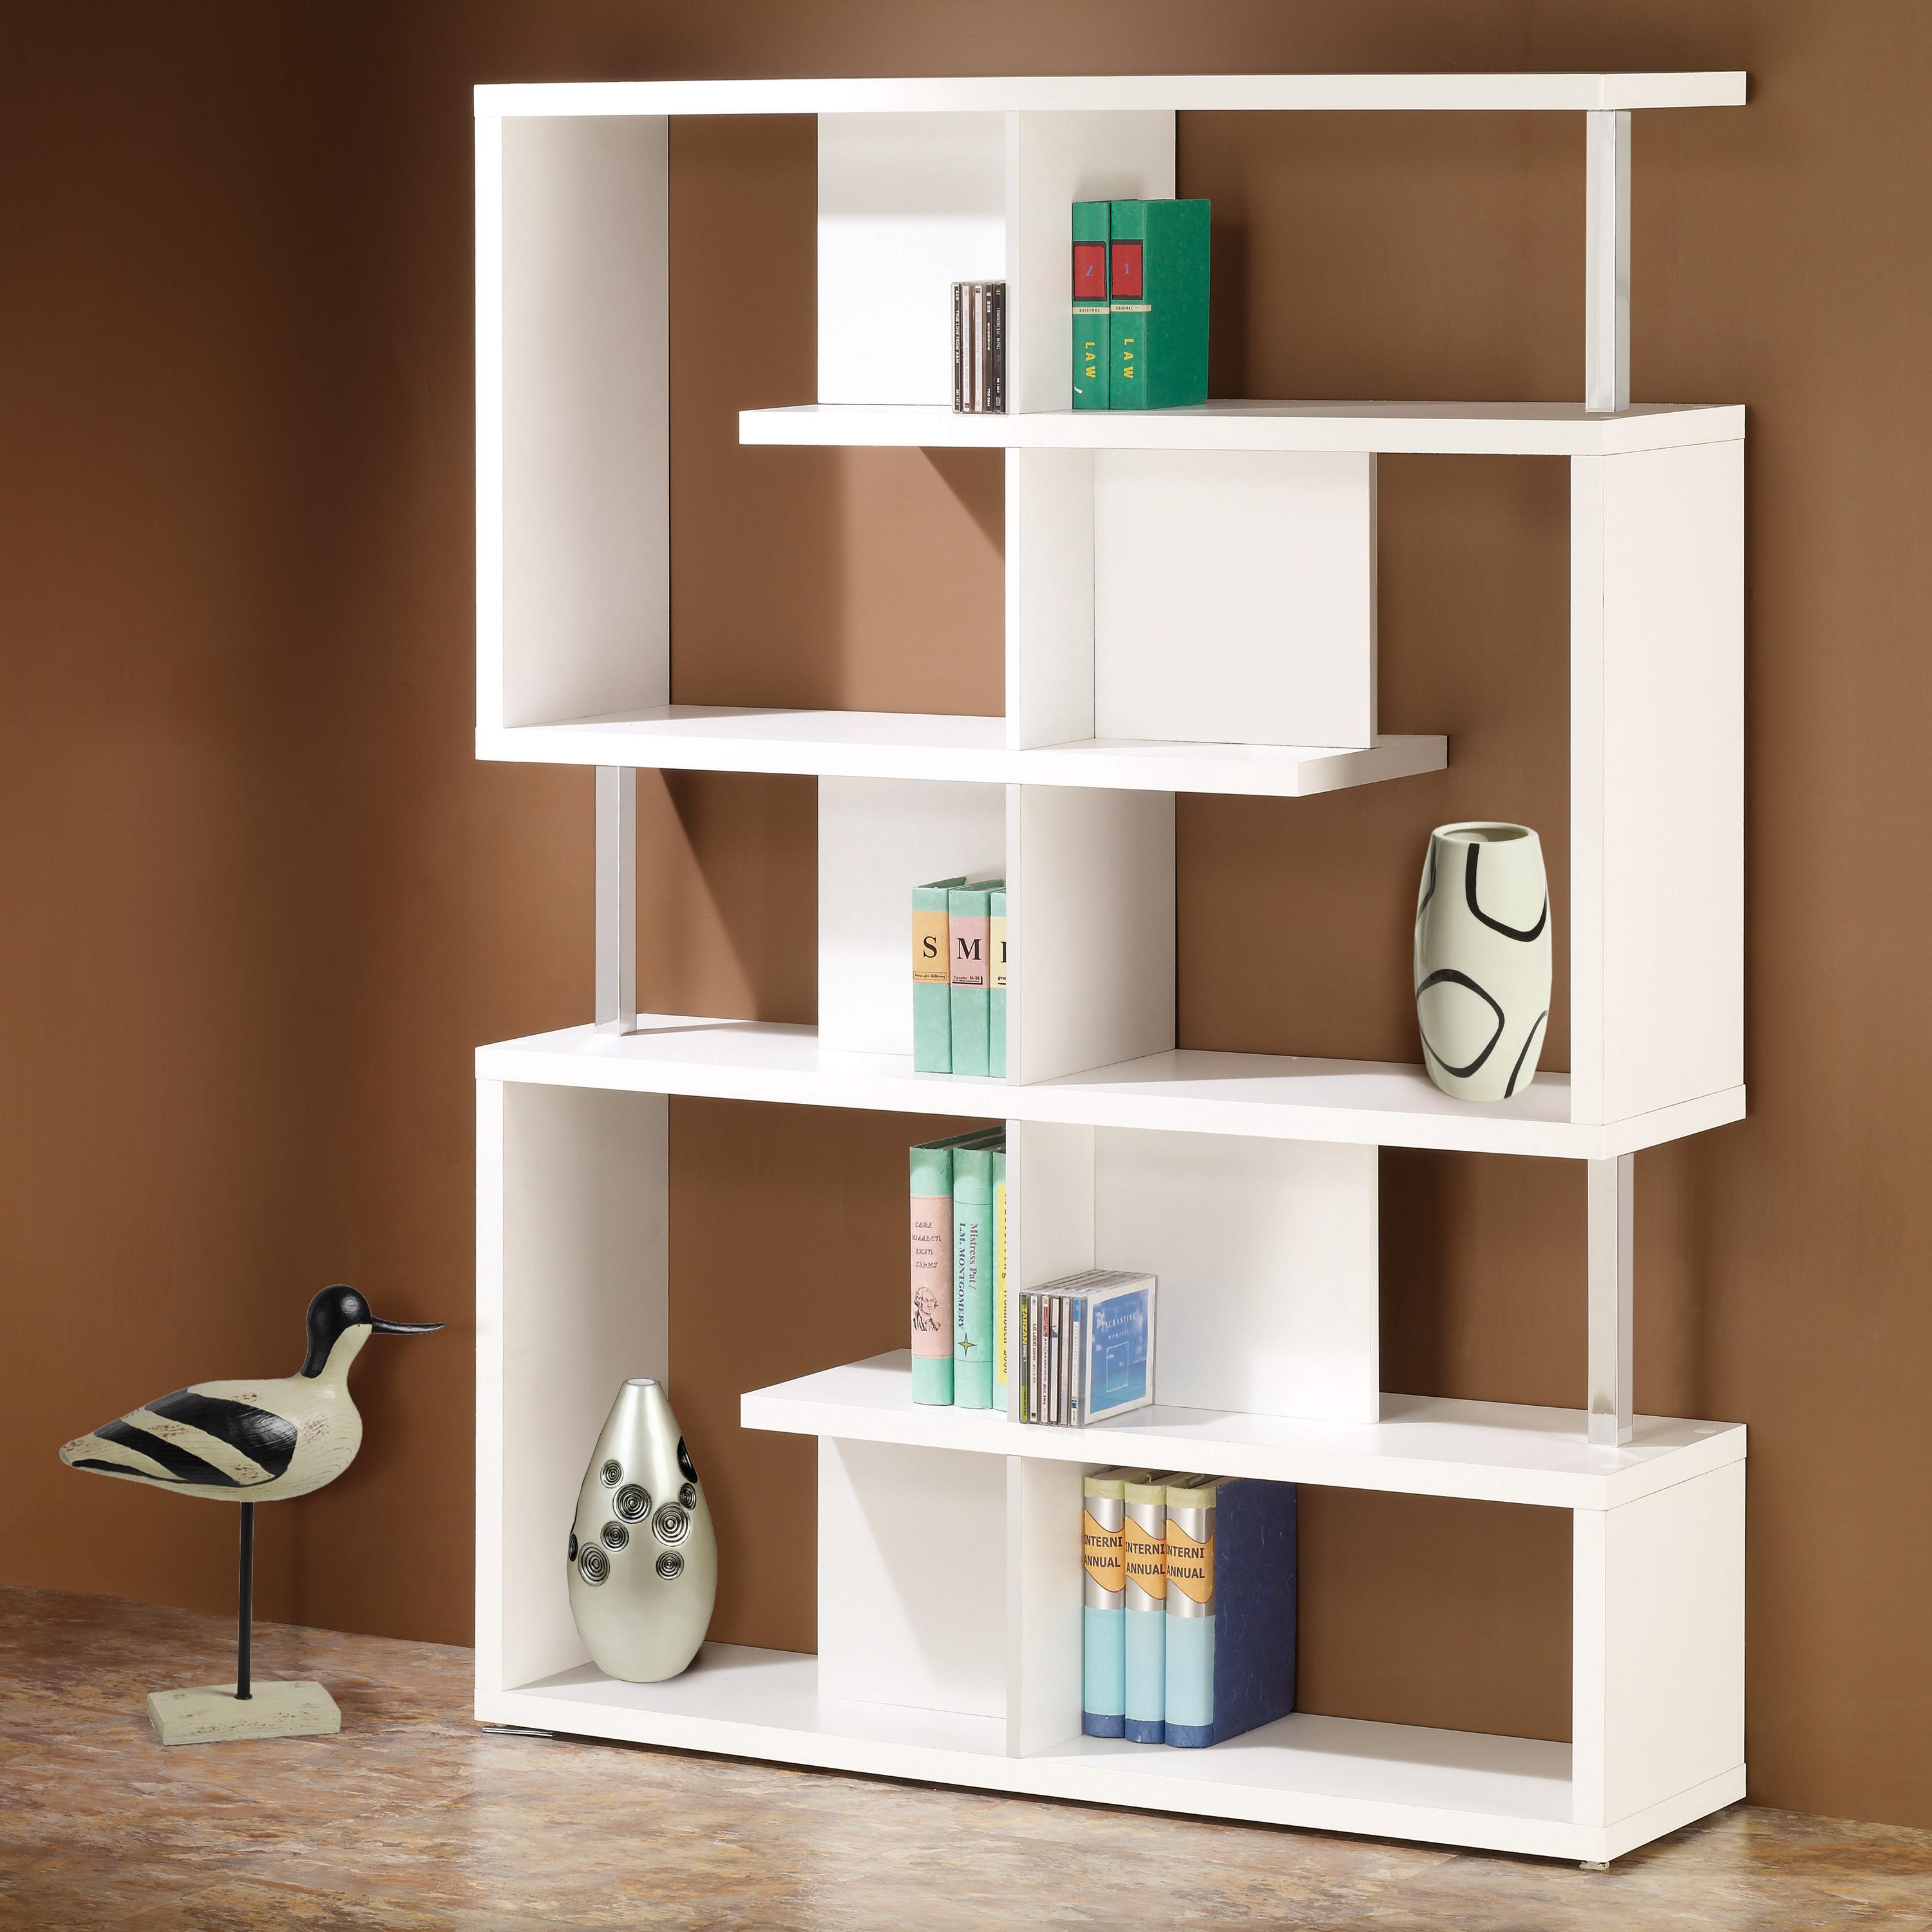 Value City Furniture Living Room Sets >> Coaster Bookcases Modern White Finish Bookcase | Value City Furniture | Open Bookcases